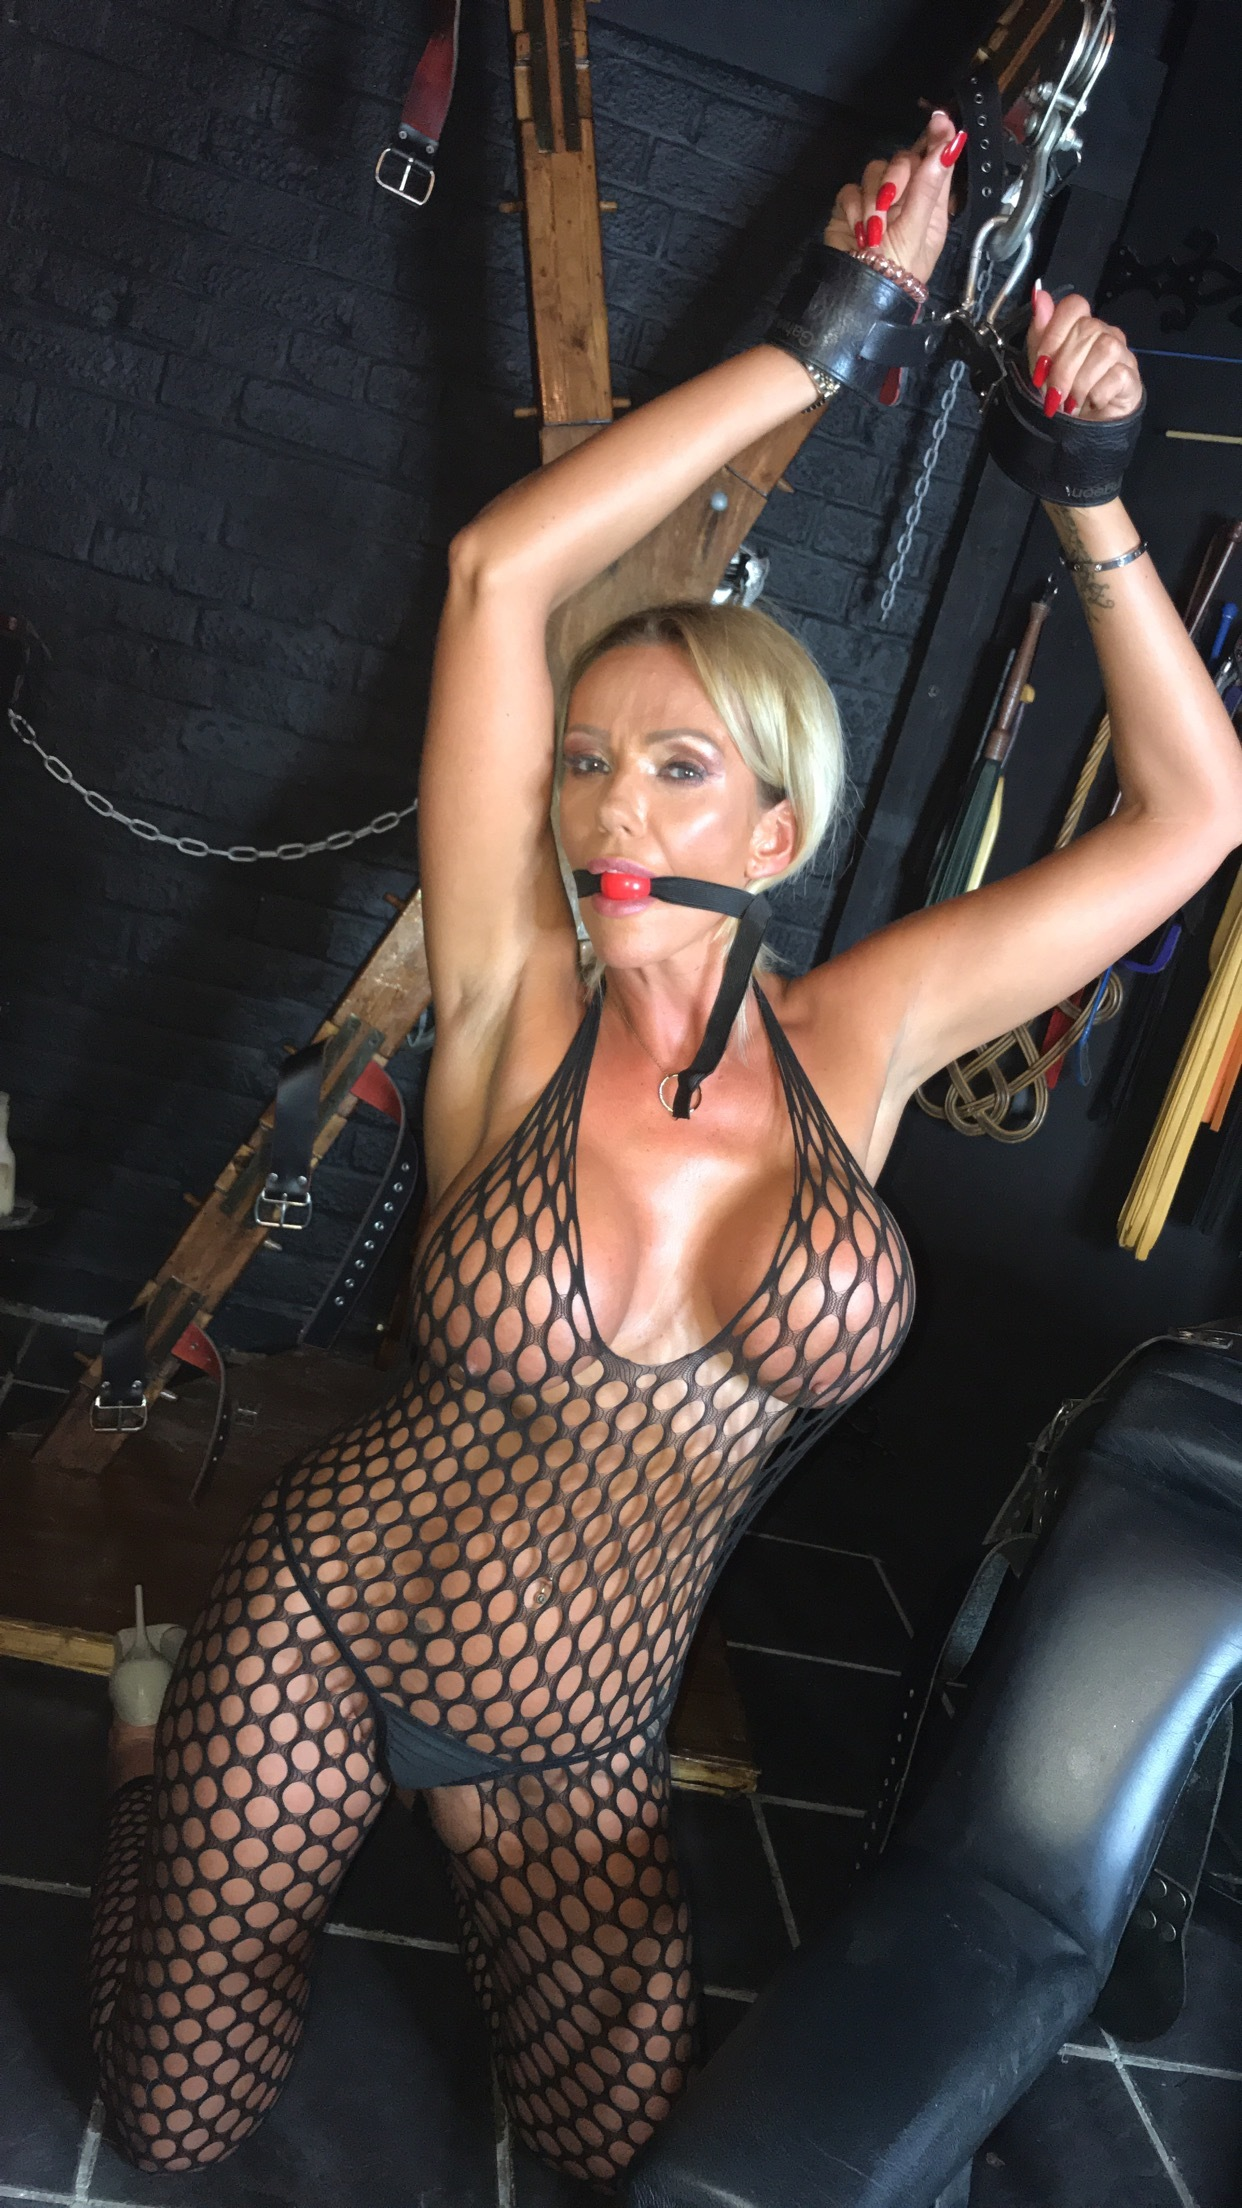 Lucy Zara - onlyfans.com - Siterip - Ubiqfile